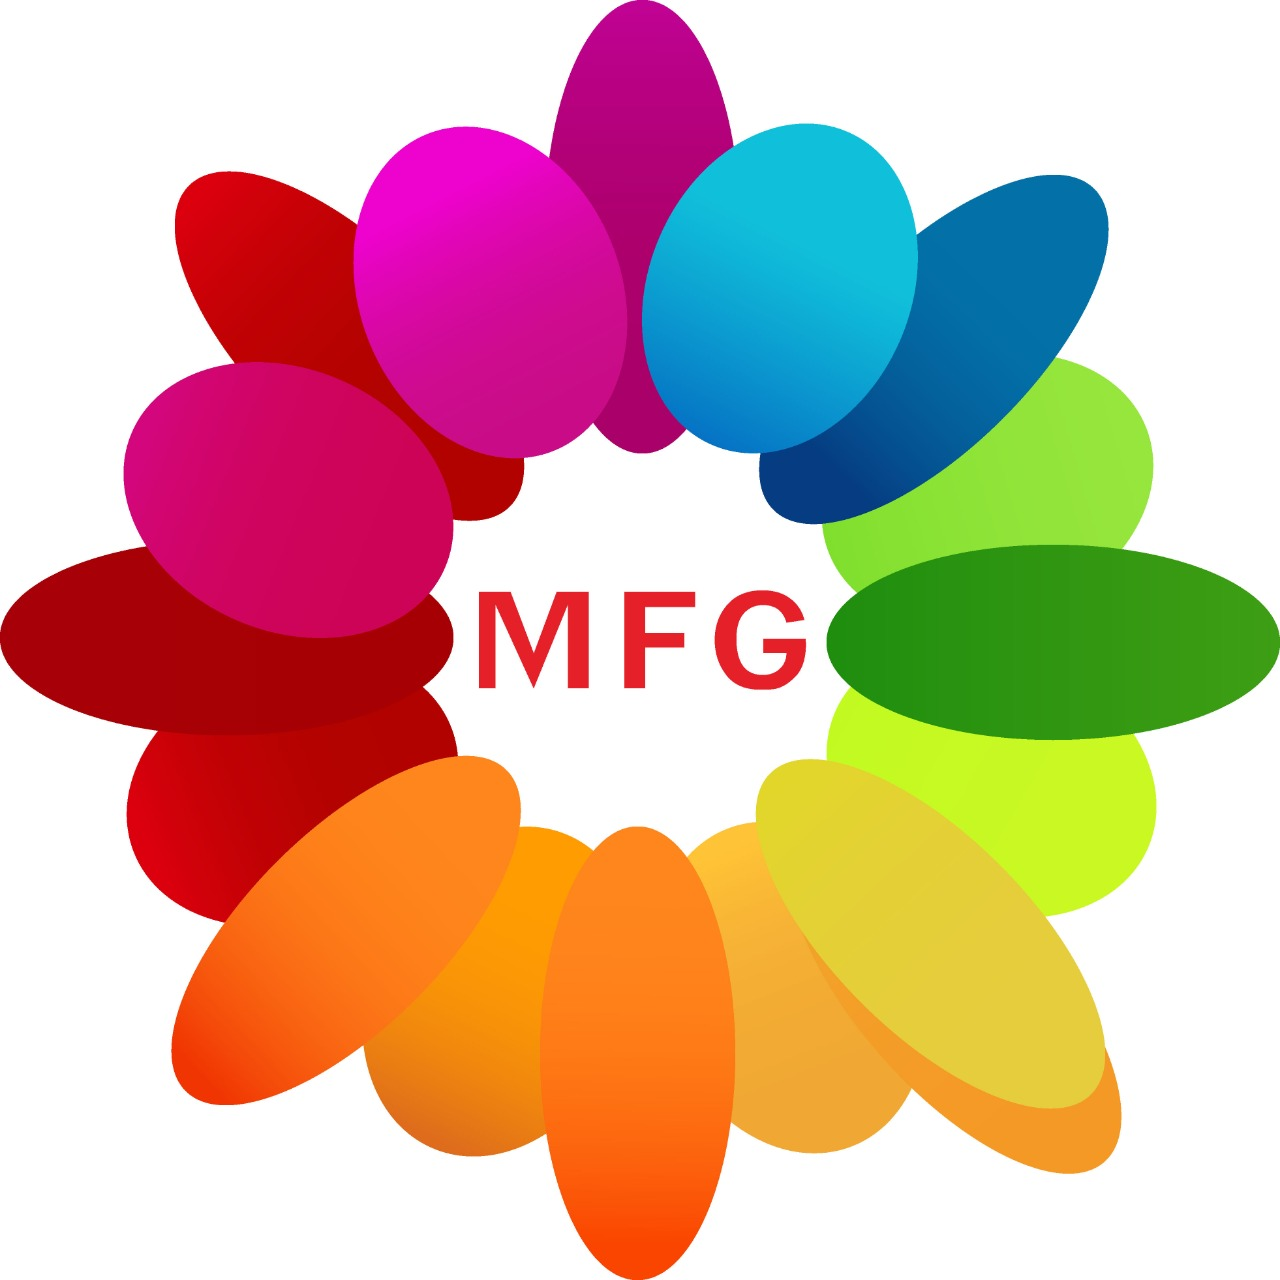 Box of assorted dryfruits with Bunch of asiatic lilies